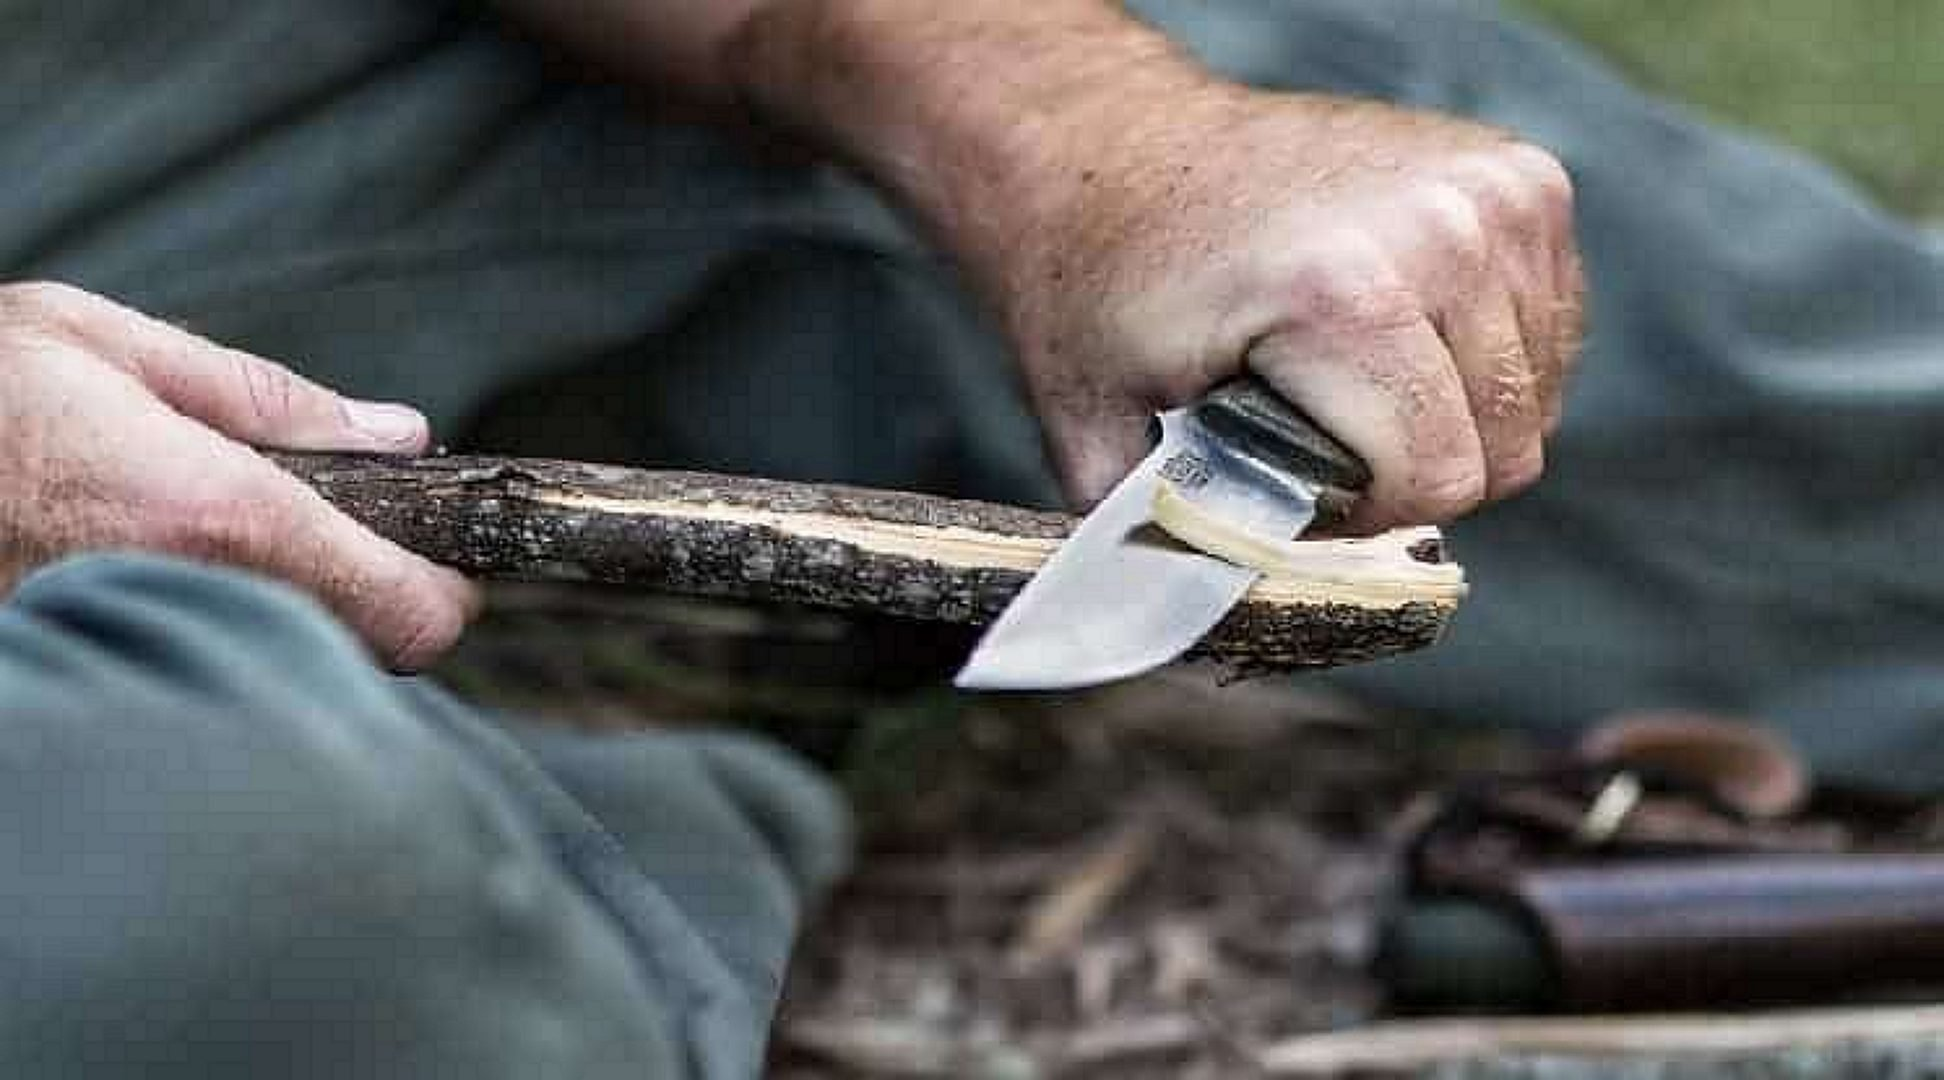 A maan carving wood with a knife